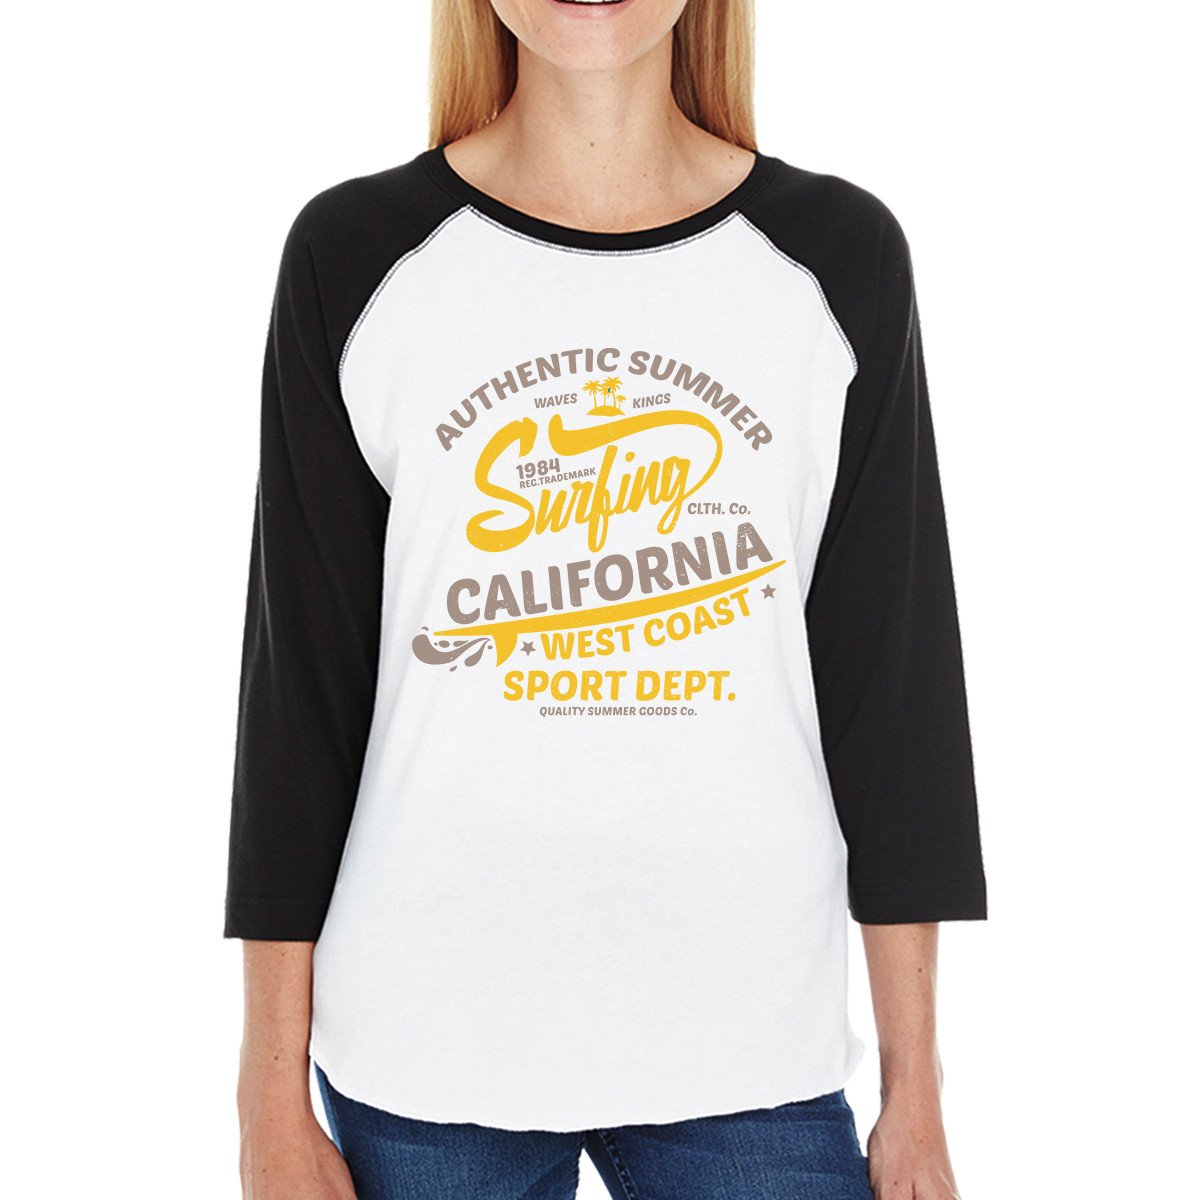 Authentic Summer Surfing California Womens Black And White Baseball Shirt